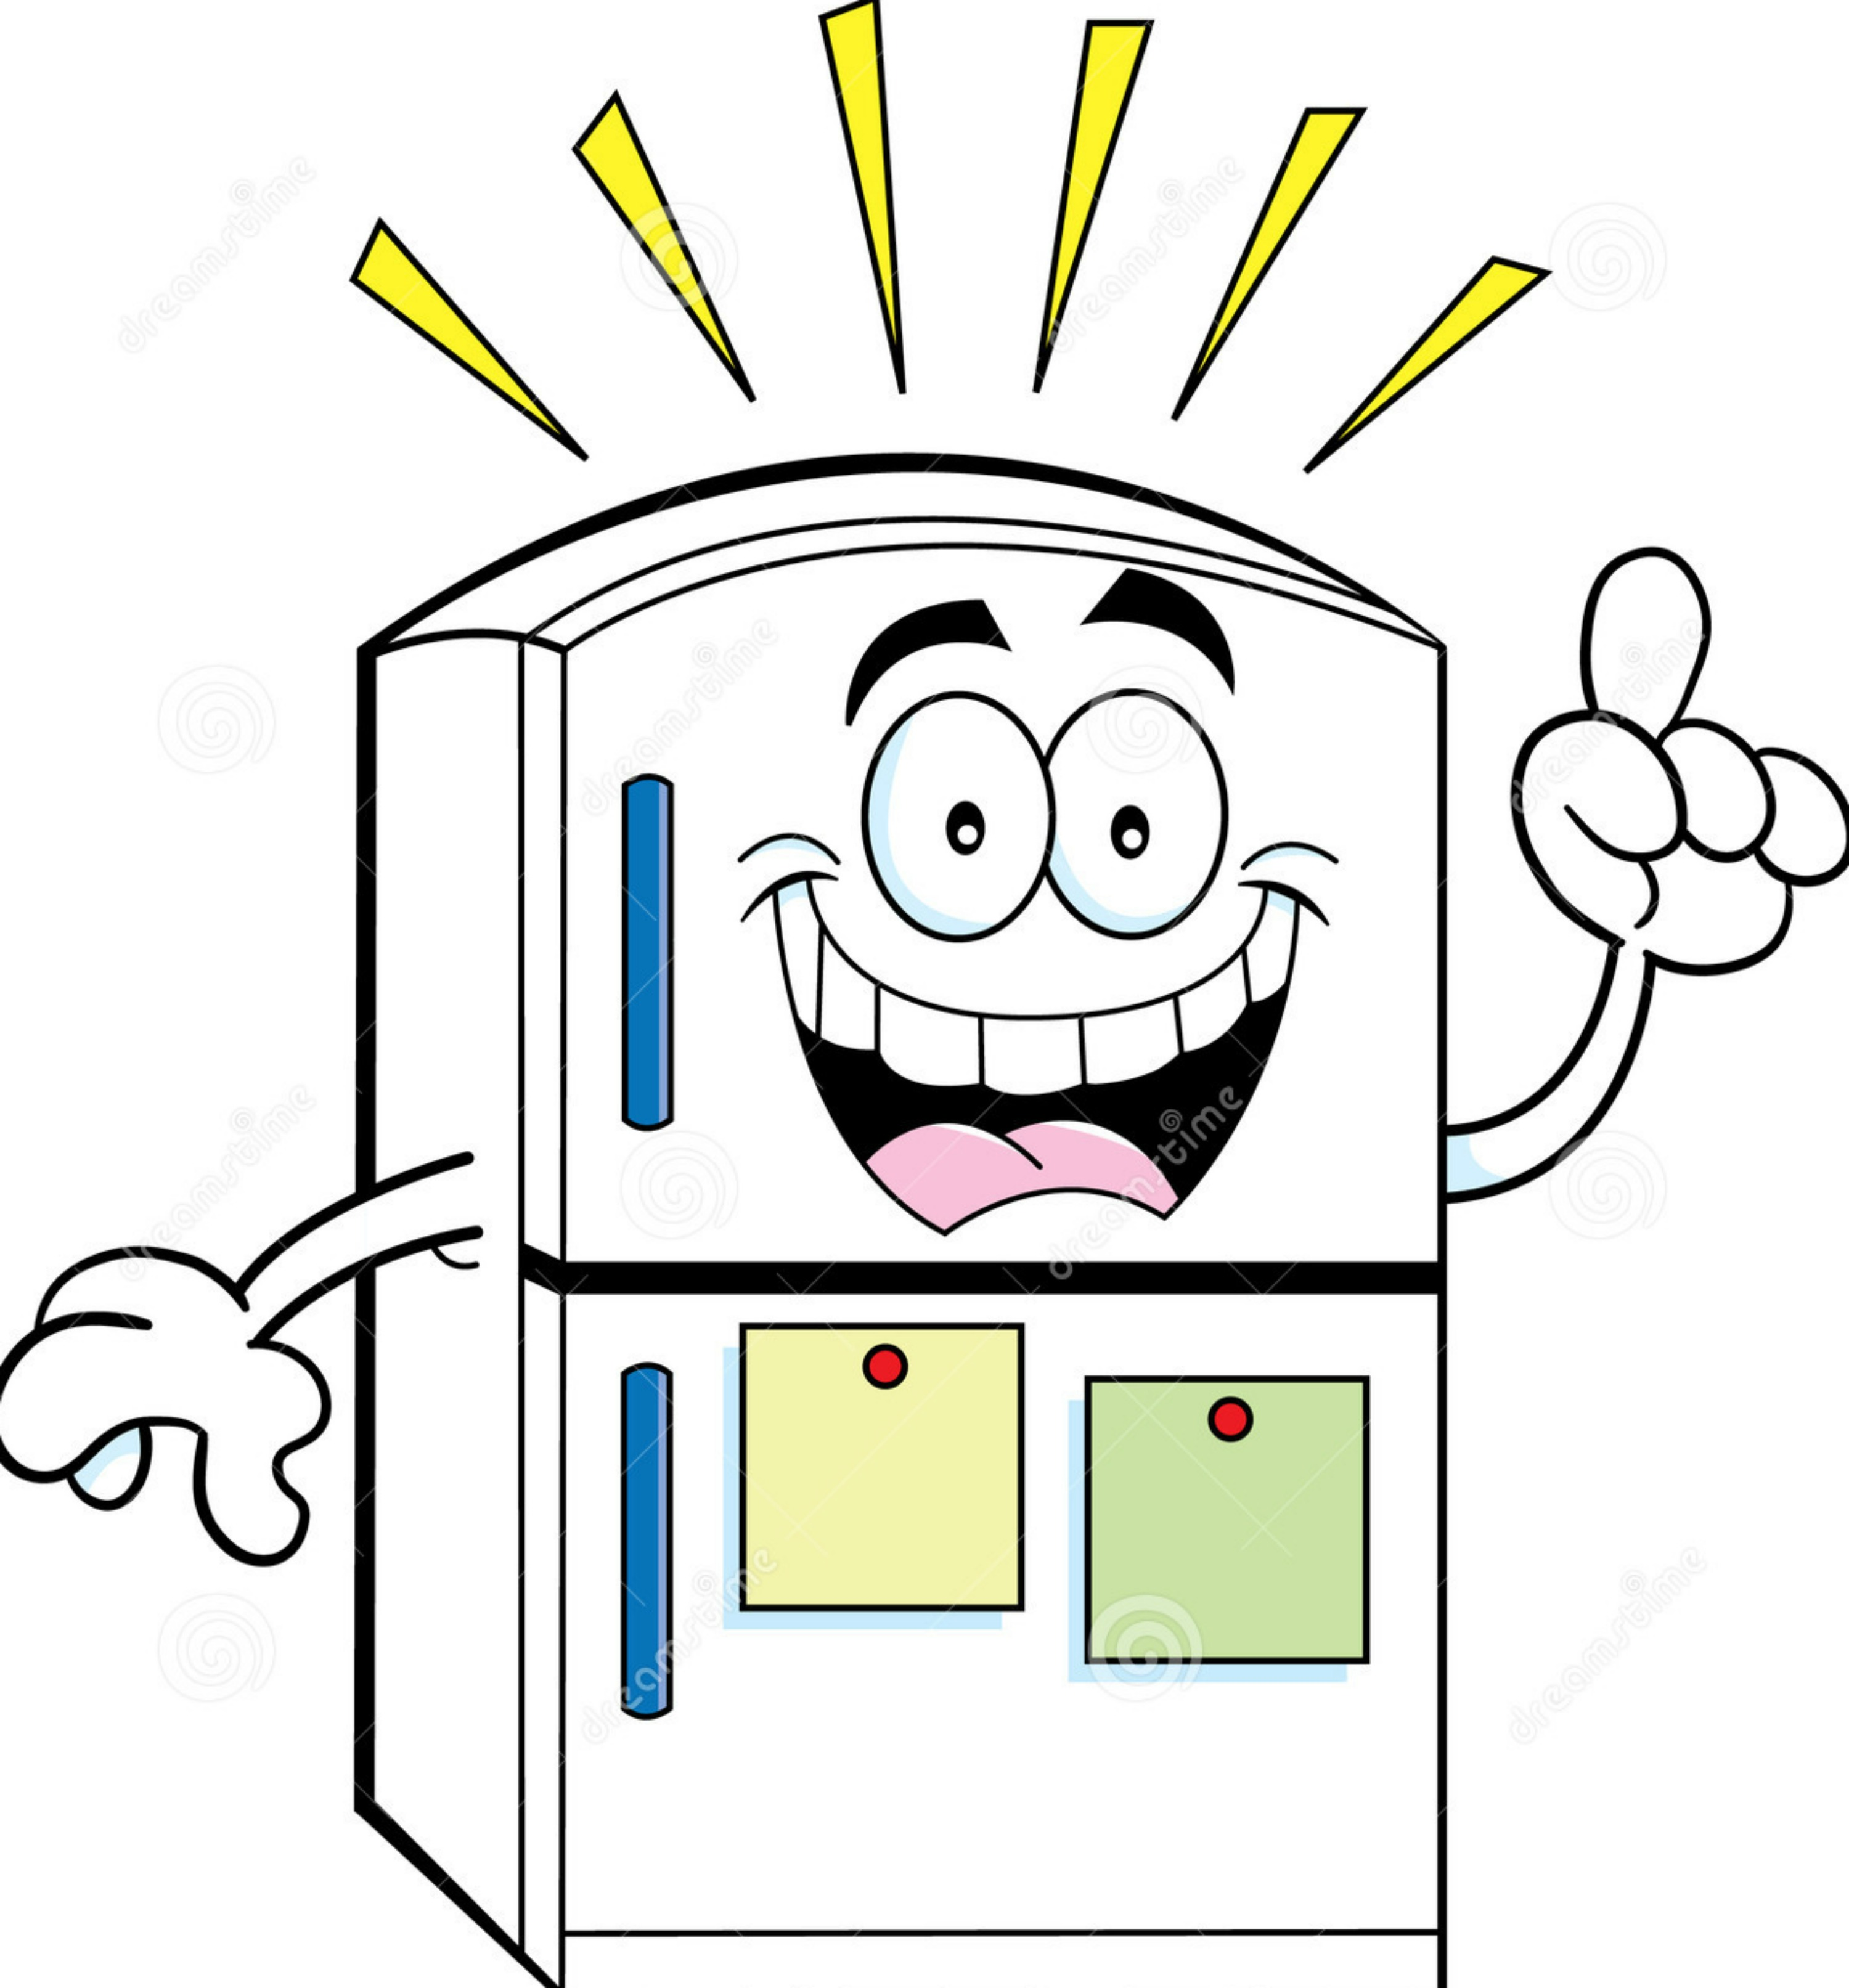 cartoon-refrigerator-idea-illustration